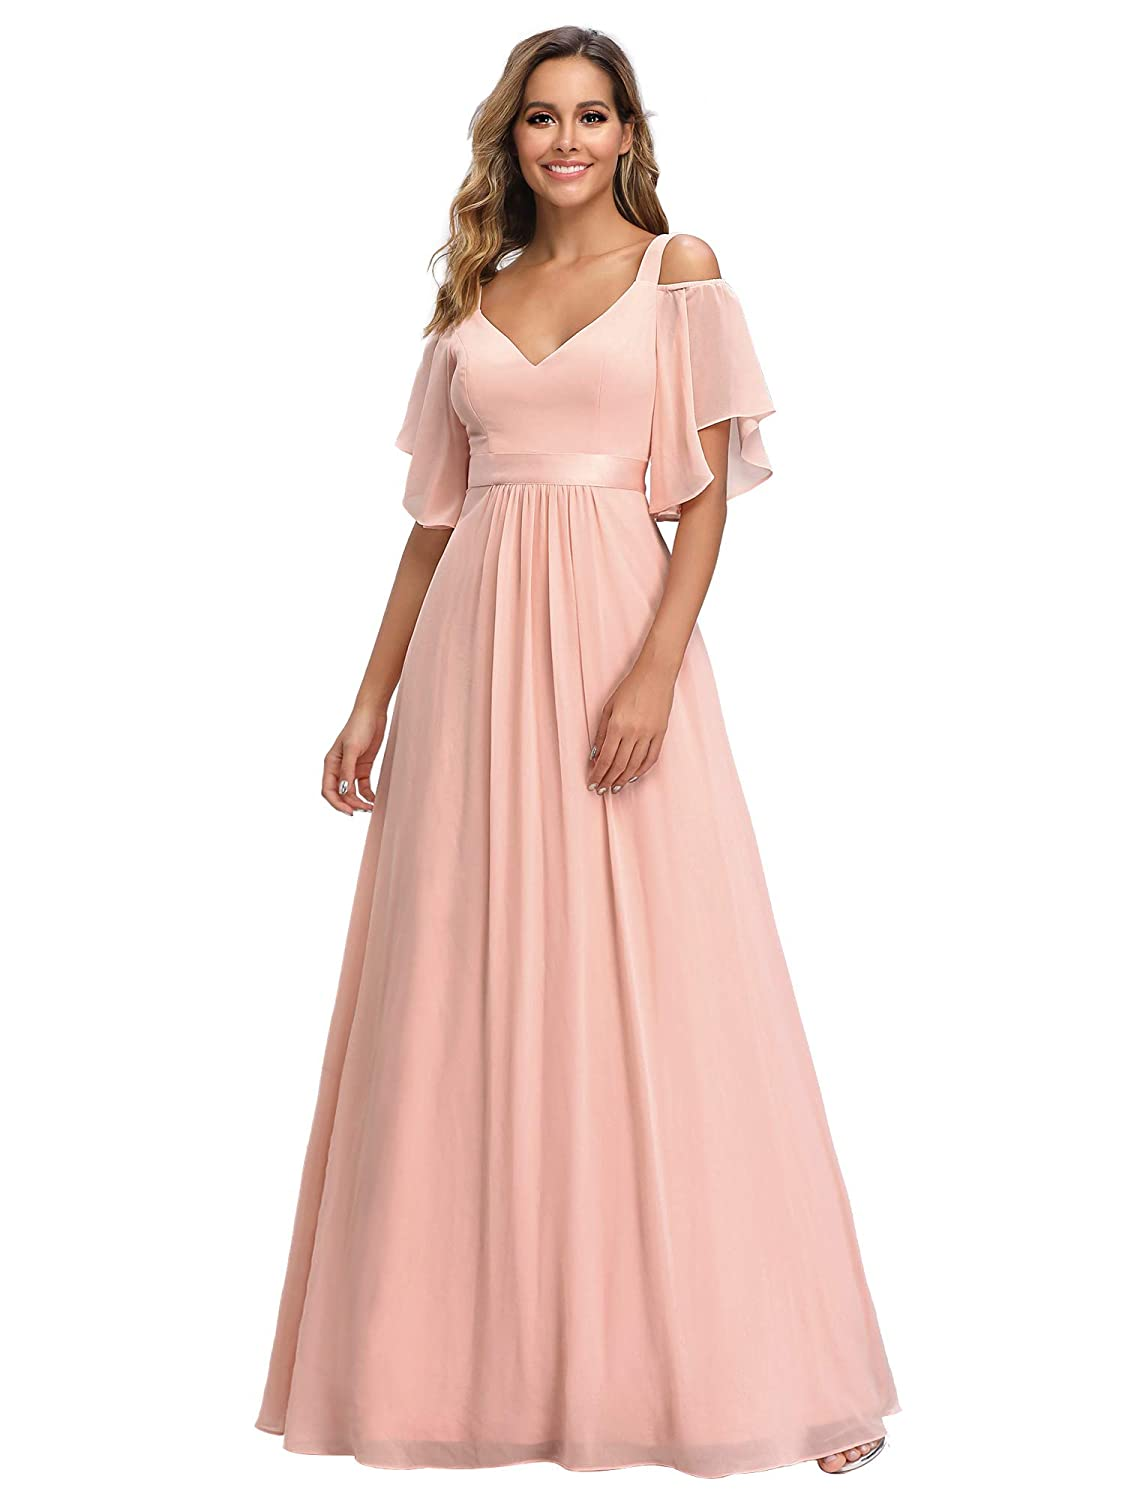 70s Prom, Formal, Evening, Party Dresses Ever-Pretty Womens A-Line Cold Shoulder Bridesmaid Dress Evening Gowns 7871 $54.99 AT vintagedancer.com